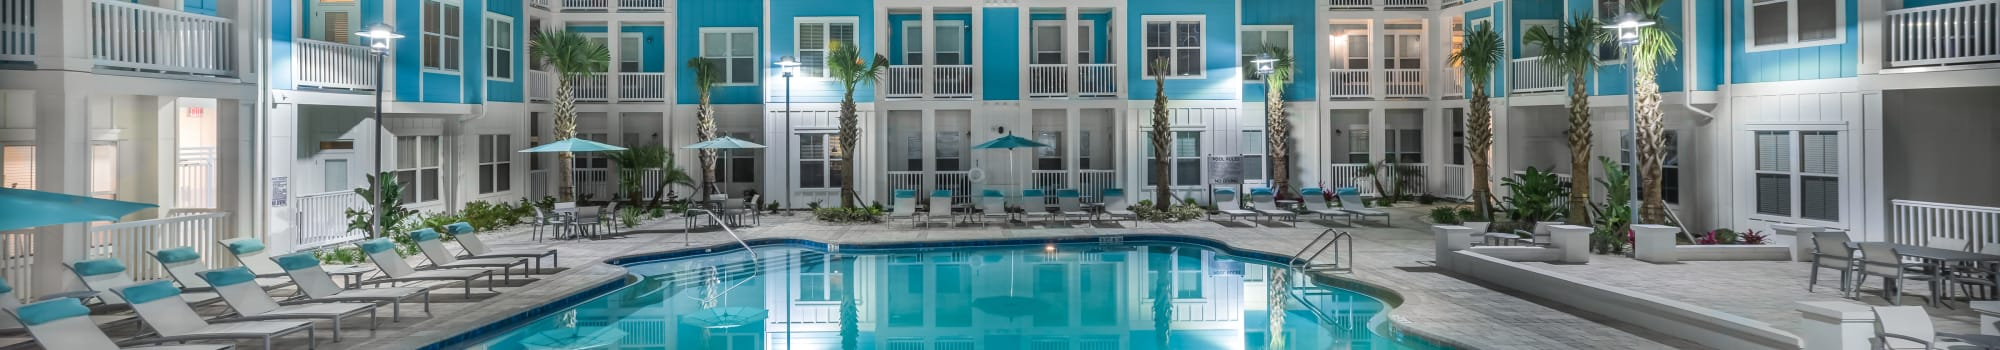 Pet friendly at BluWater Apartments in Jacksonville Beach, Florida